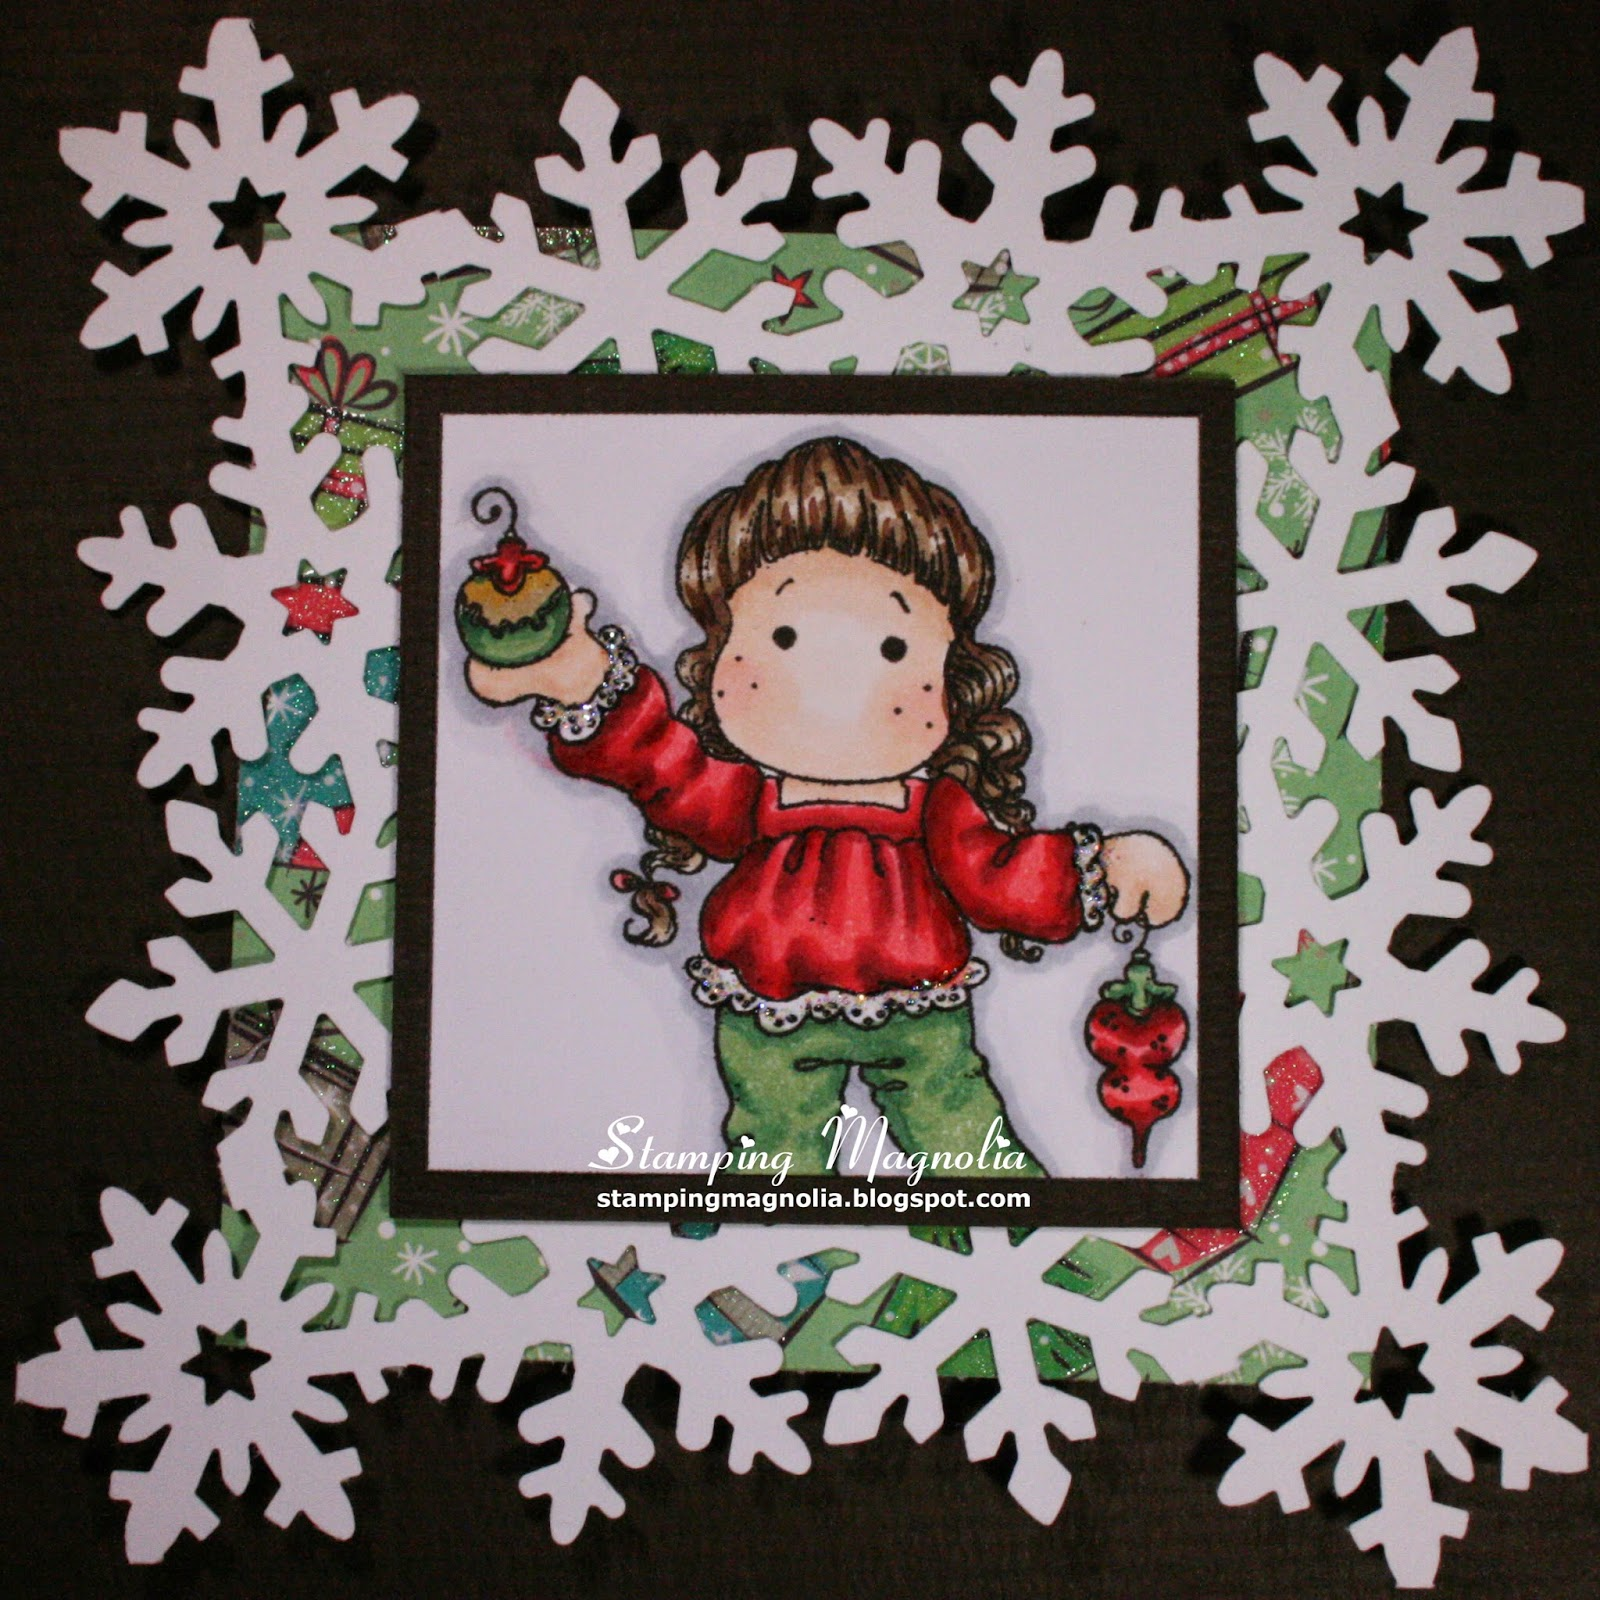 Coloring Magnolia Stamp Merry Little Christmas Collection - Hanging Ornaments